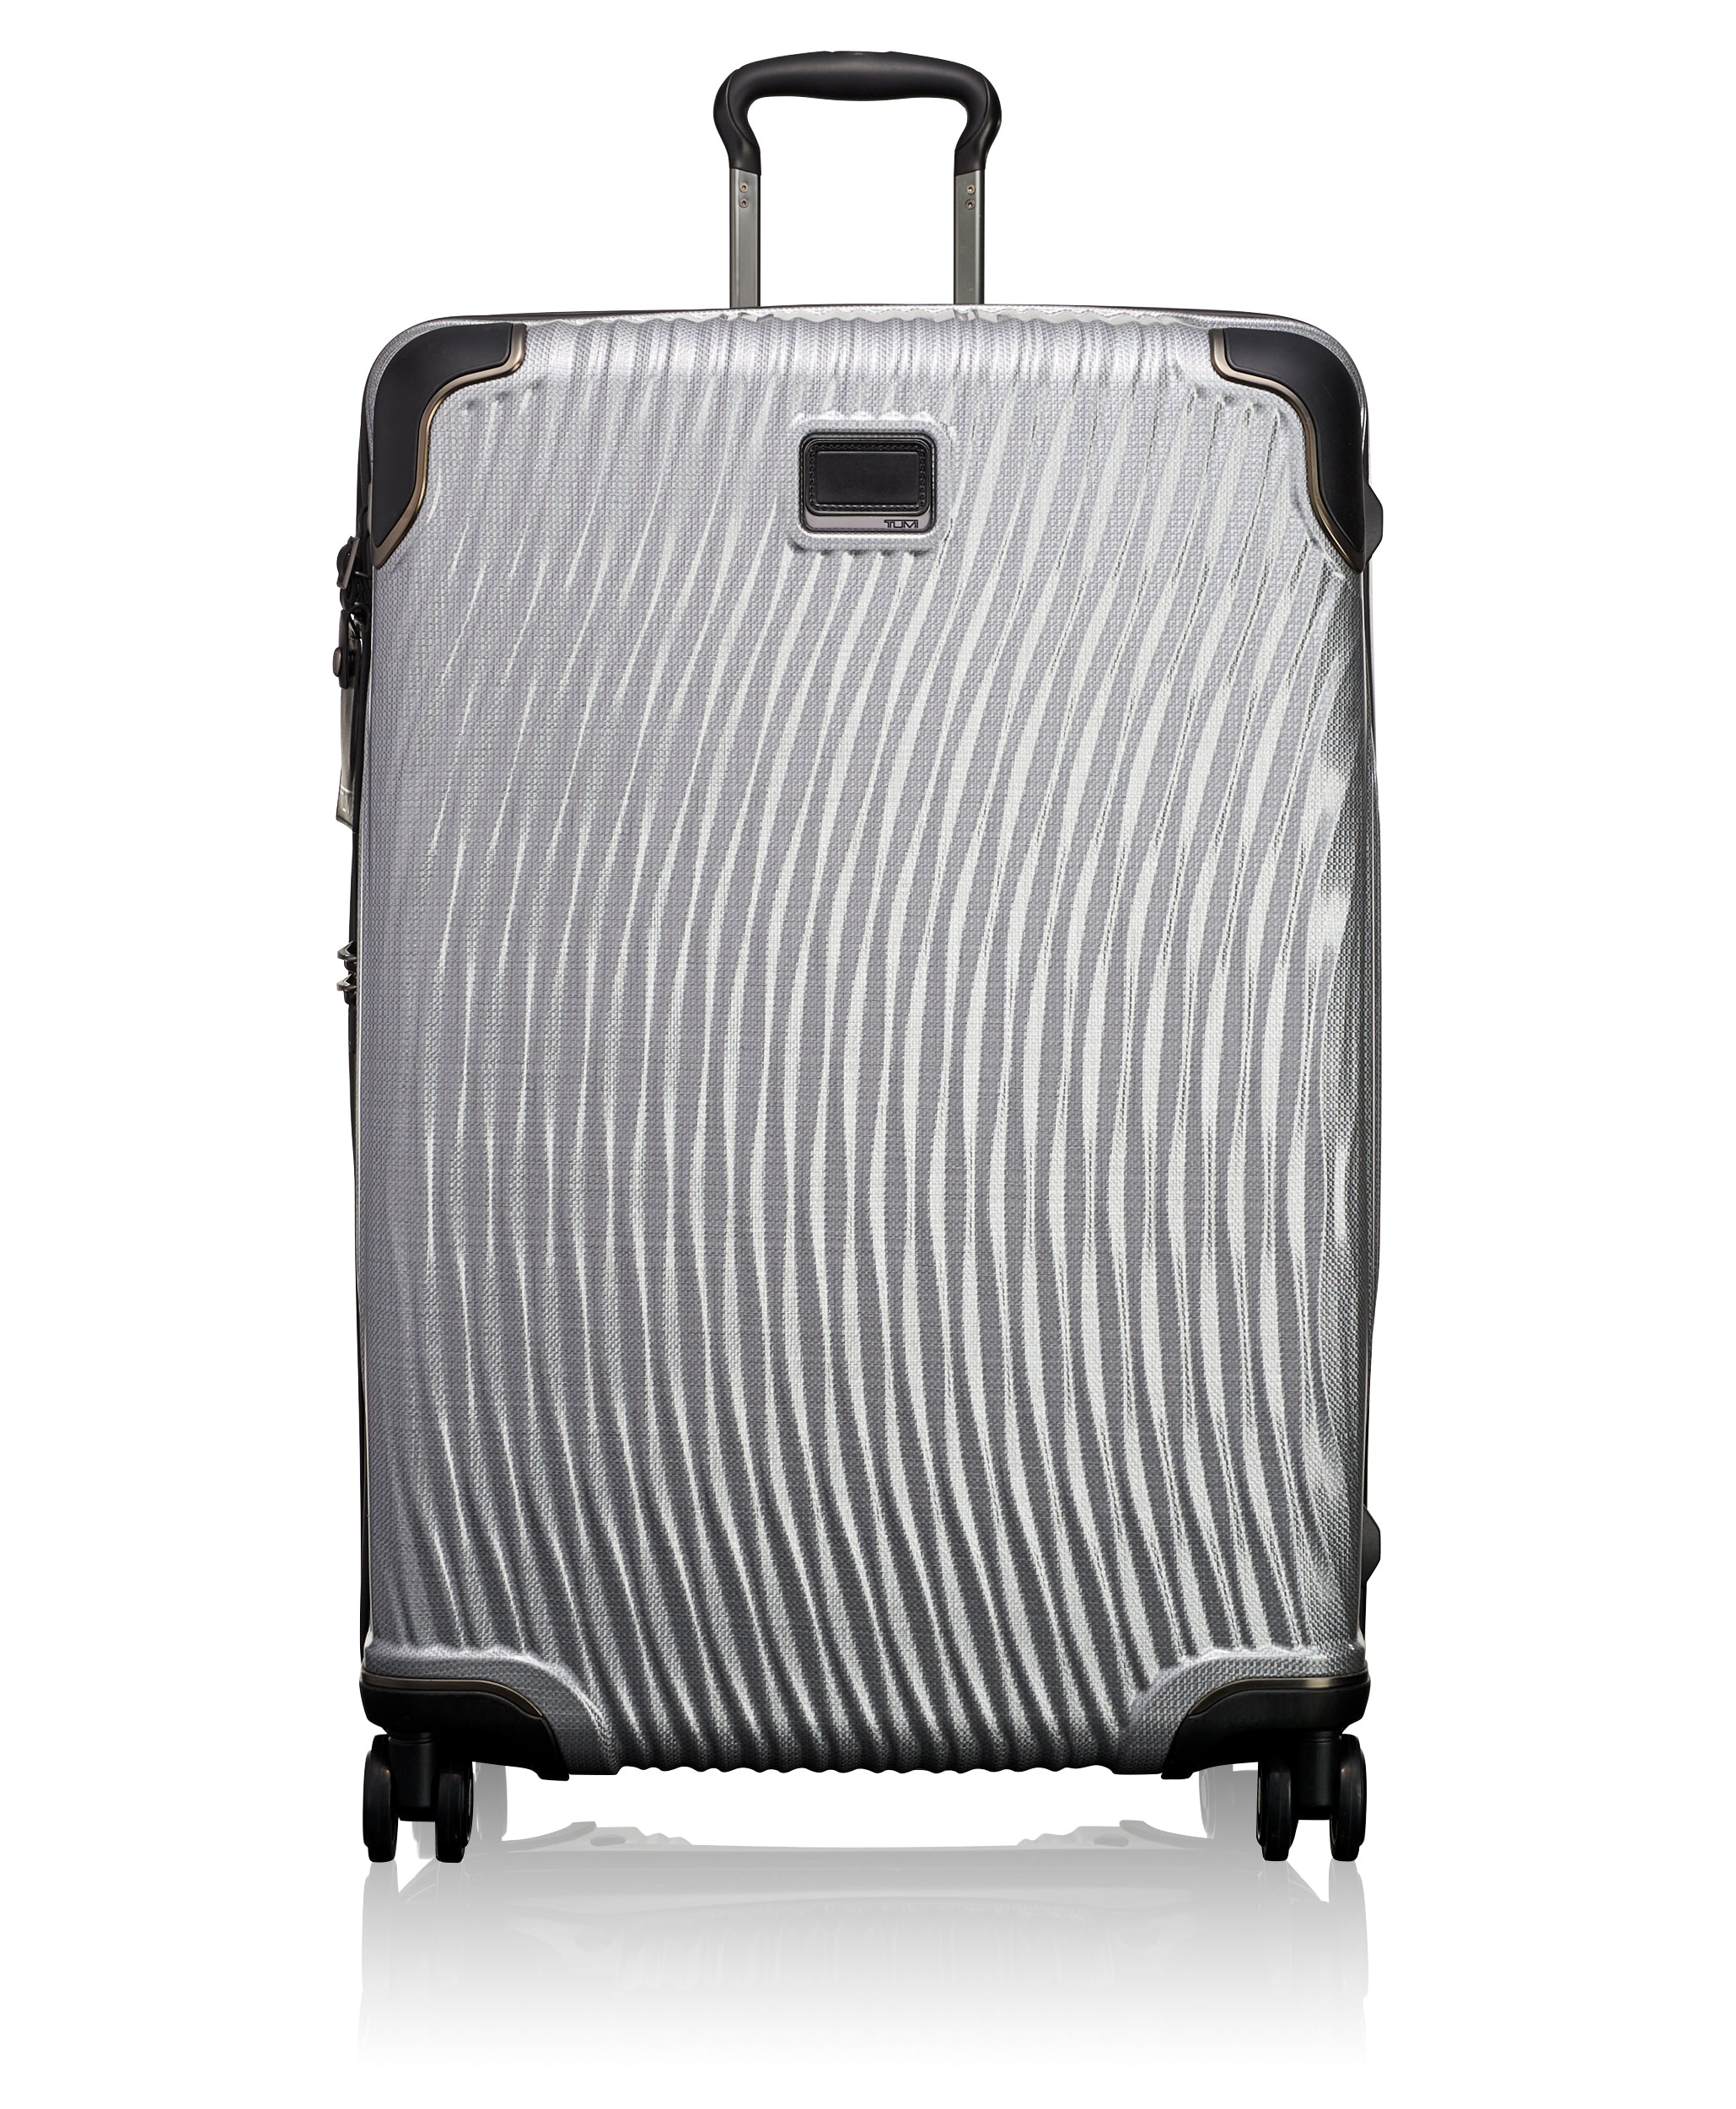 Tumi Latitude Extended Trip Packing Case - Silver